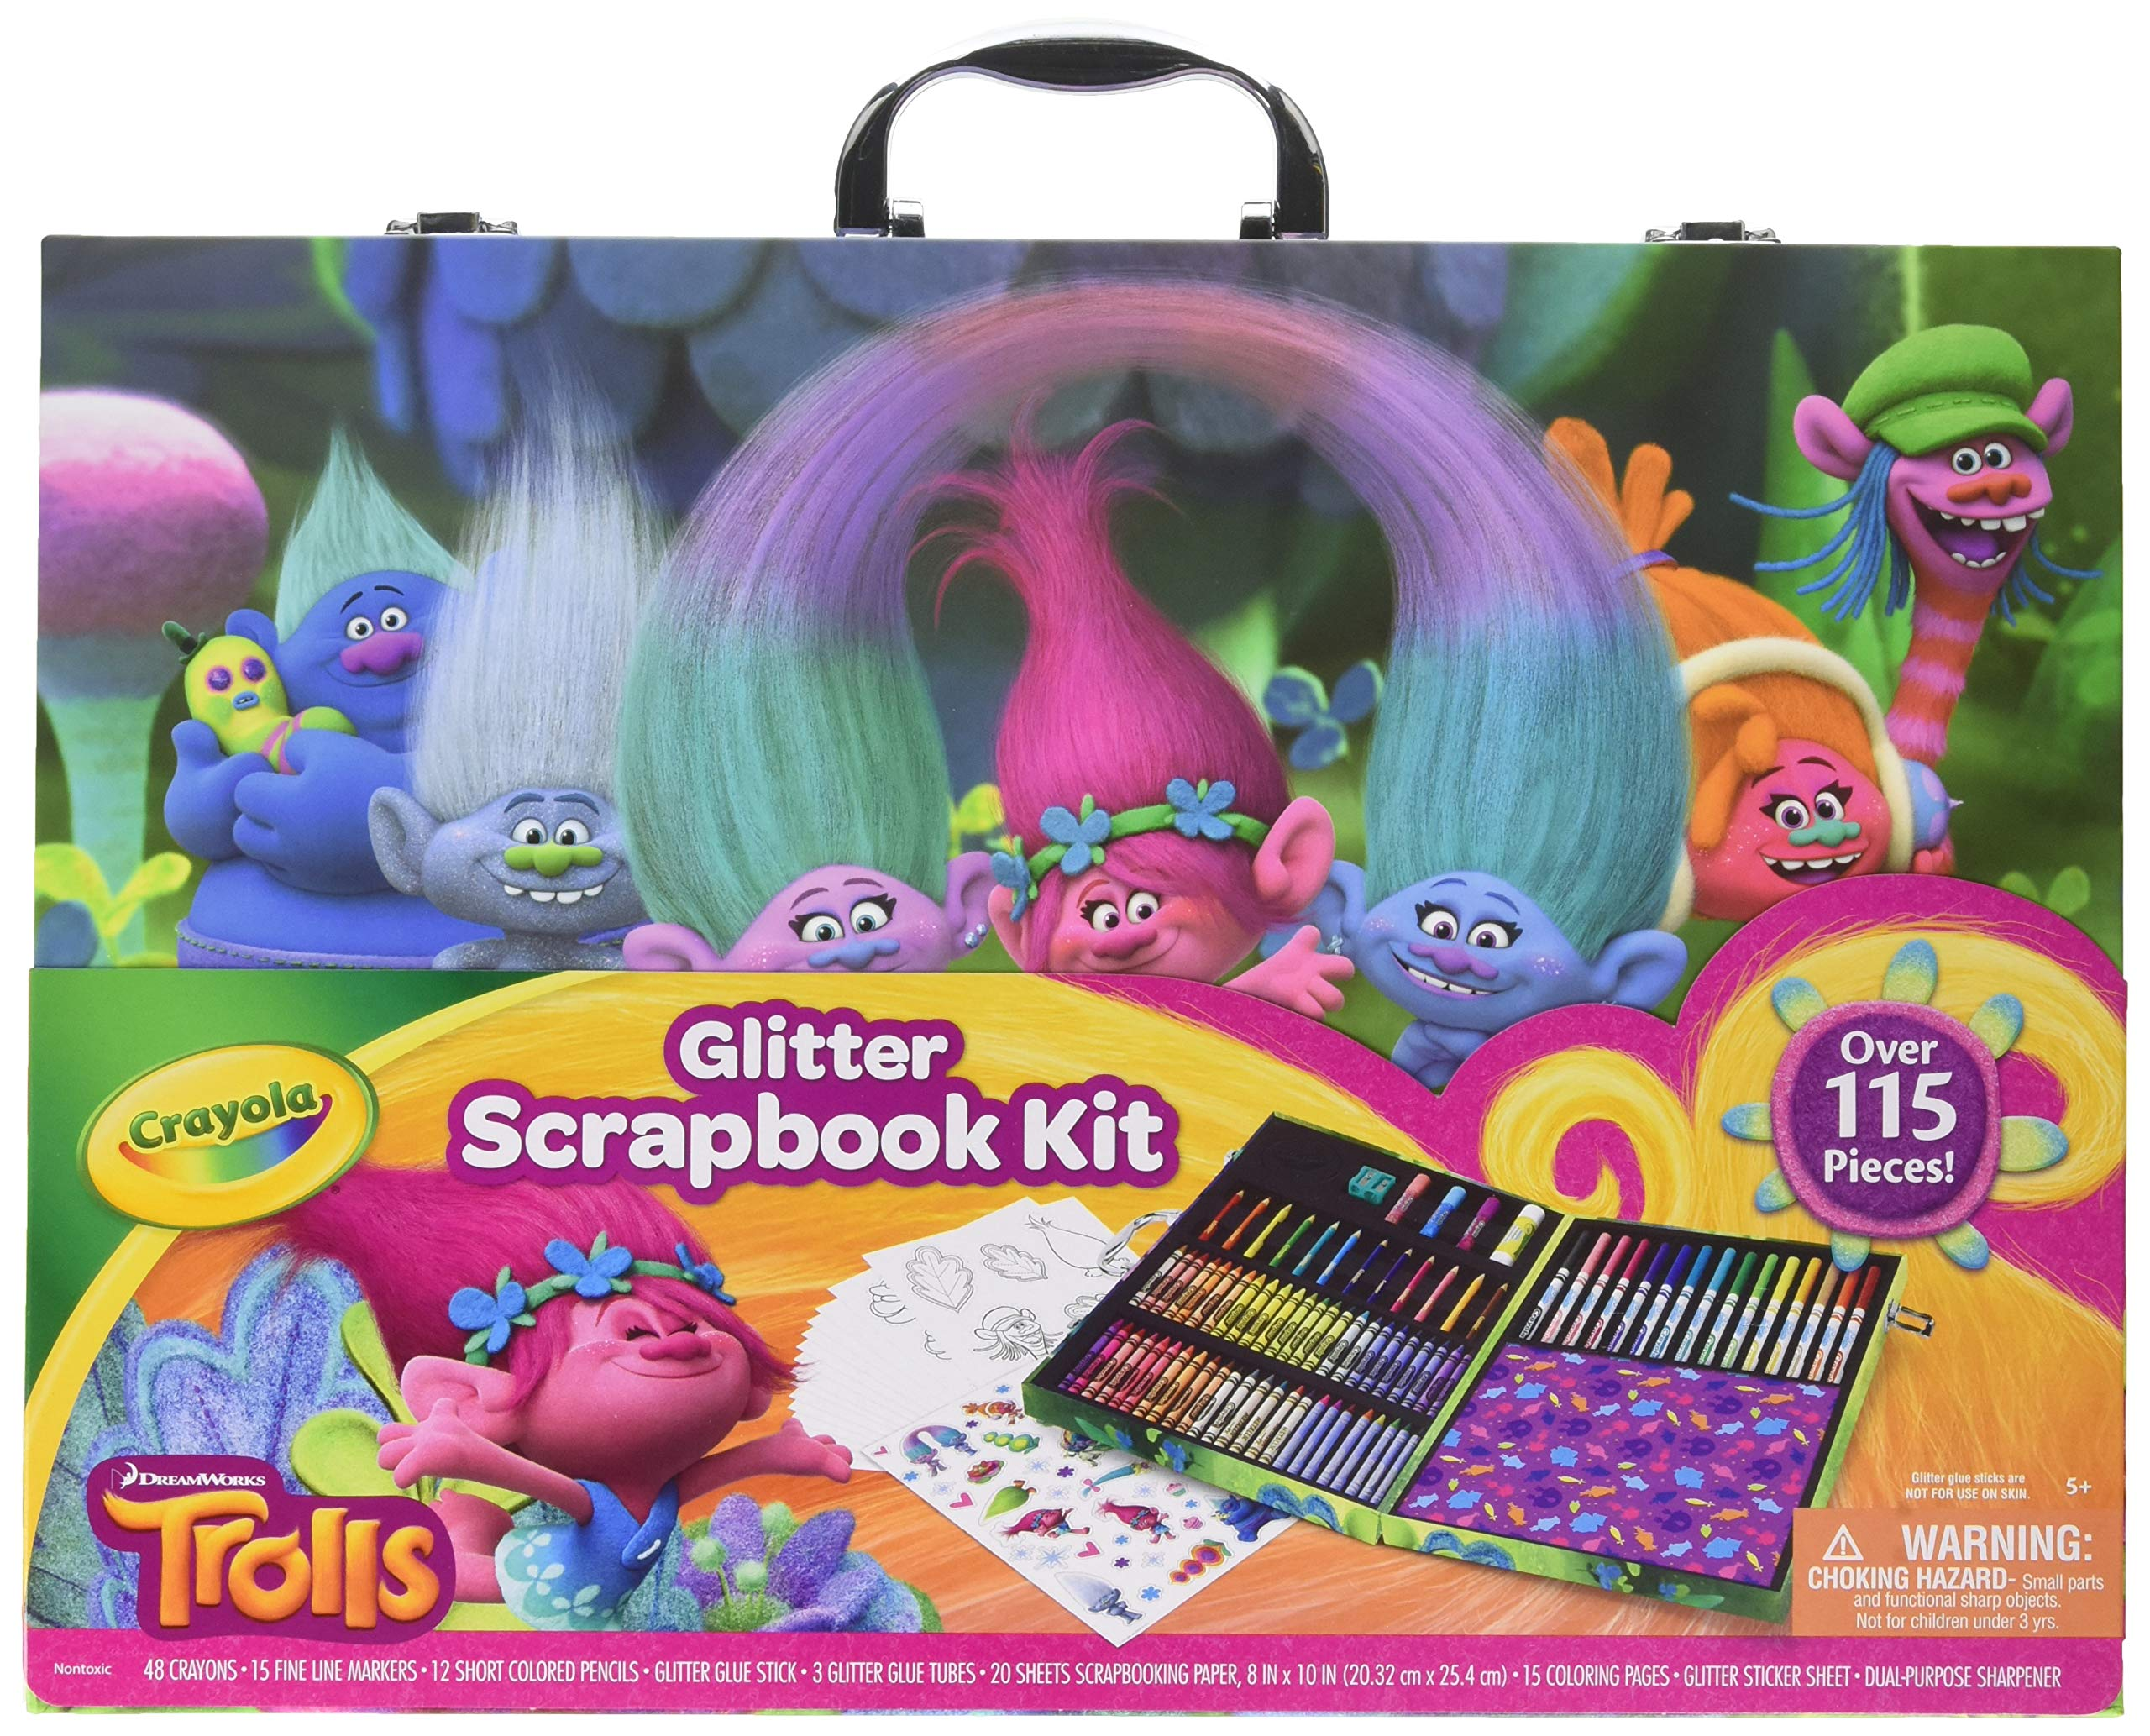 Crayola 1836532 Dreamworks Trolls Glitter Scrapbook Kit, 115+ Pieces Art Gift for Kids 5 & Up, Includes Crayons, Markers, Colored Pencils by Crayola